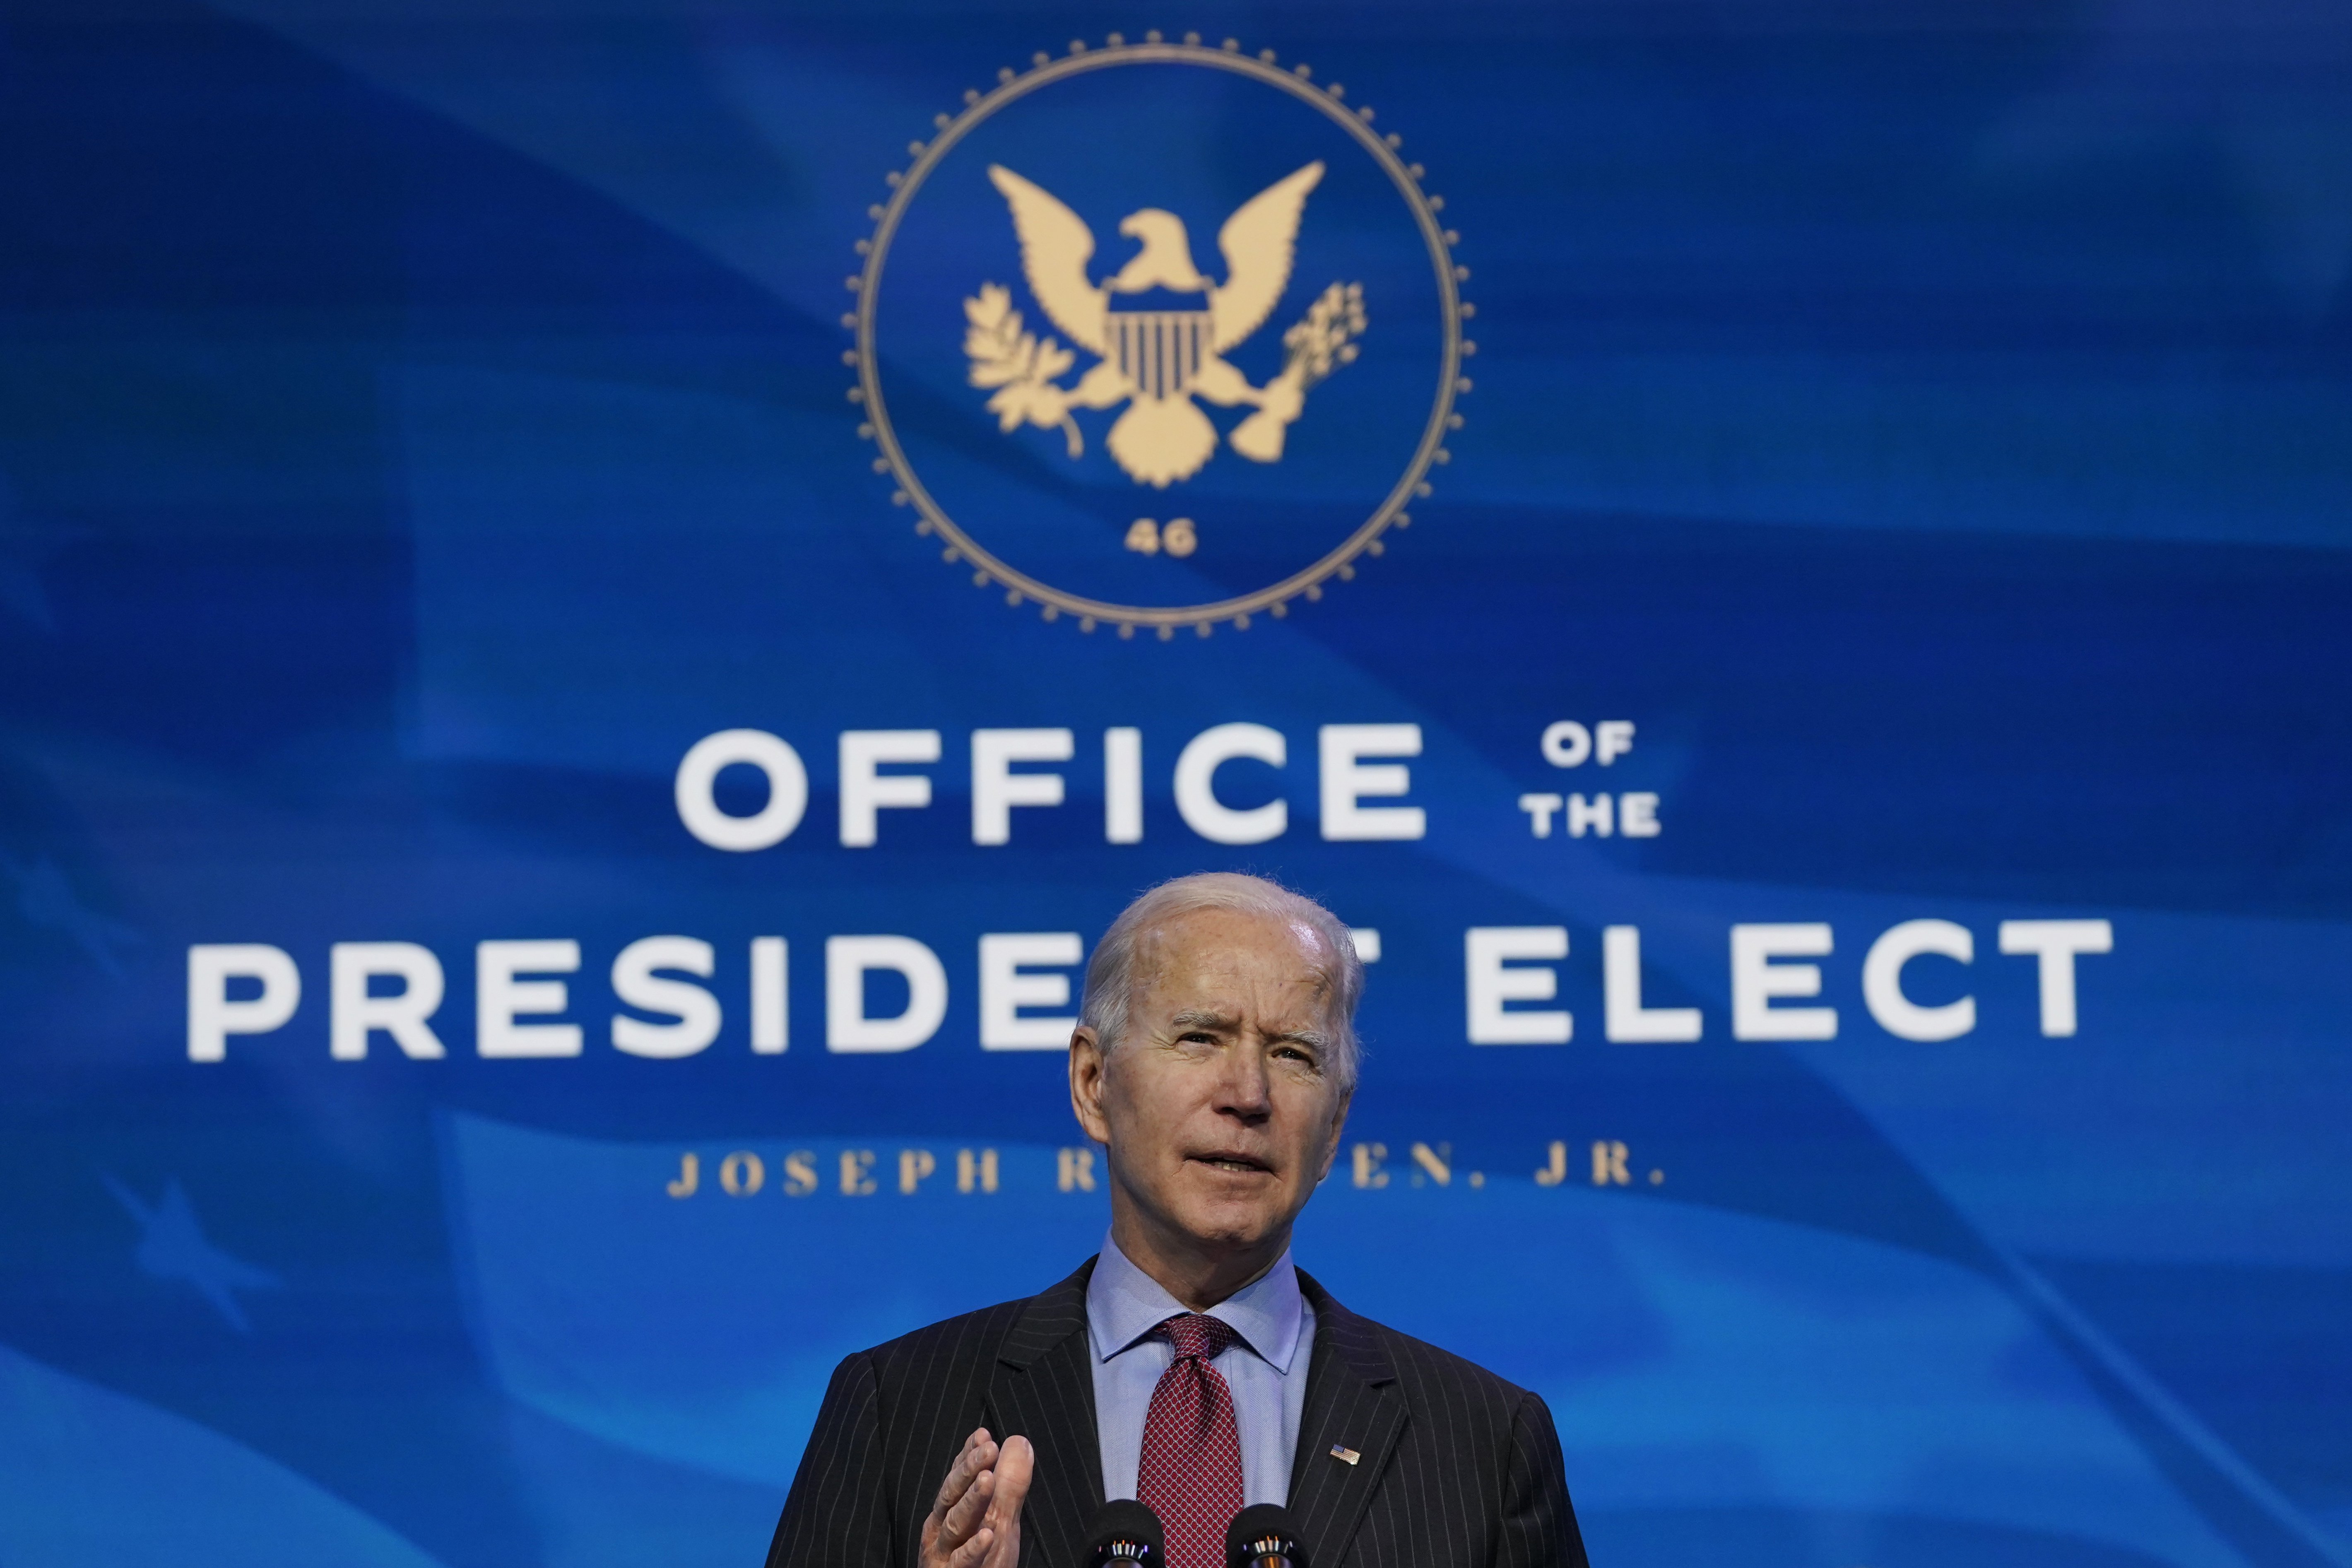 President-elect Joe Biden speaks during an event at The Queen theater in Wilmington, Del., Friday, Jan. 8, 2021, to announce key administration posts. Photo: AP